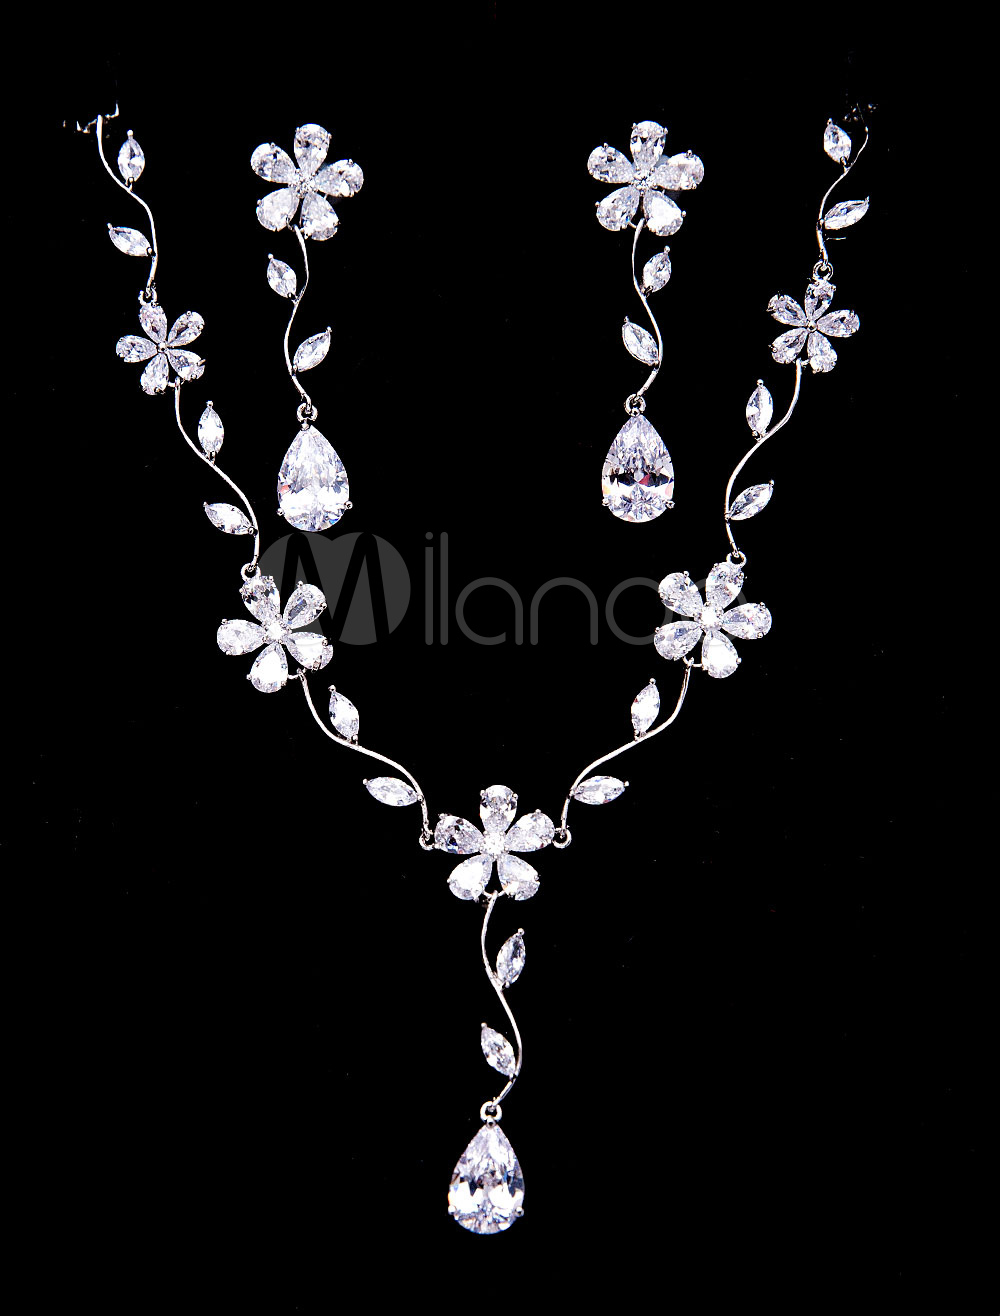 Buy Silver Wedding Jewelry Beaded Zirconia Bridal Pendant Necklace Set With Dangle Earrings for $37.79 in Milanoo store